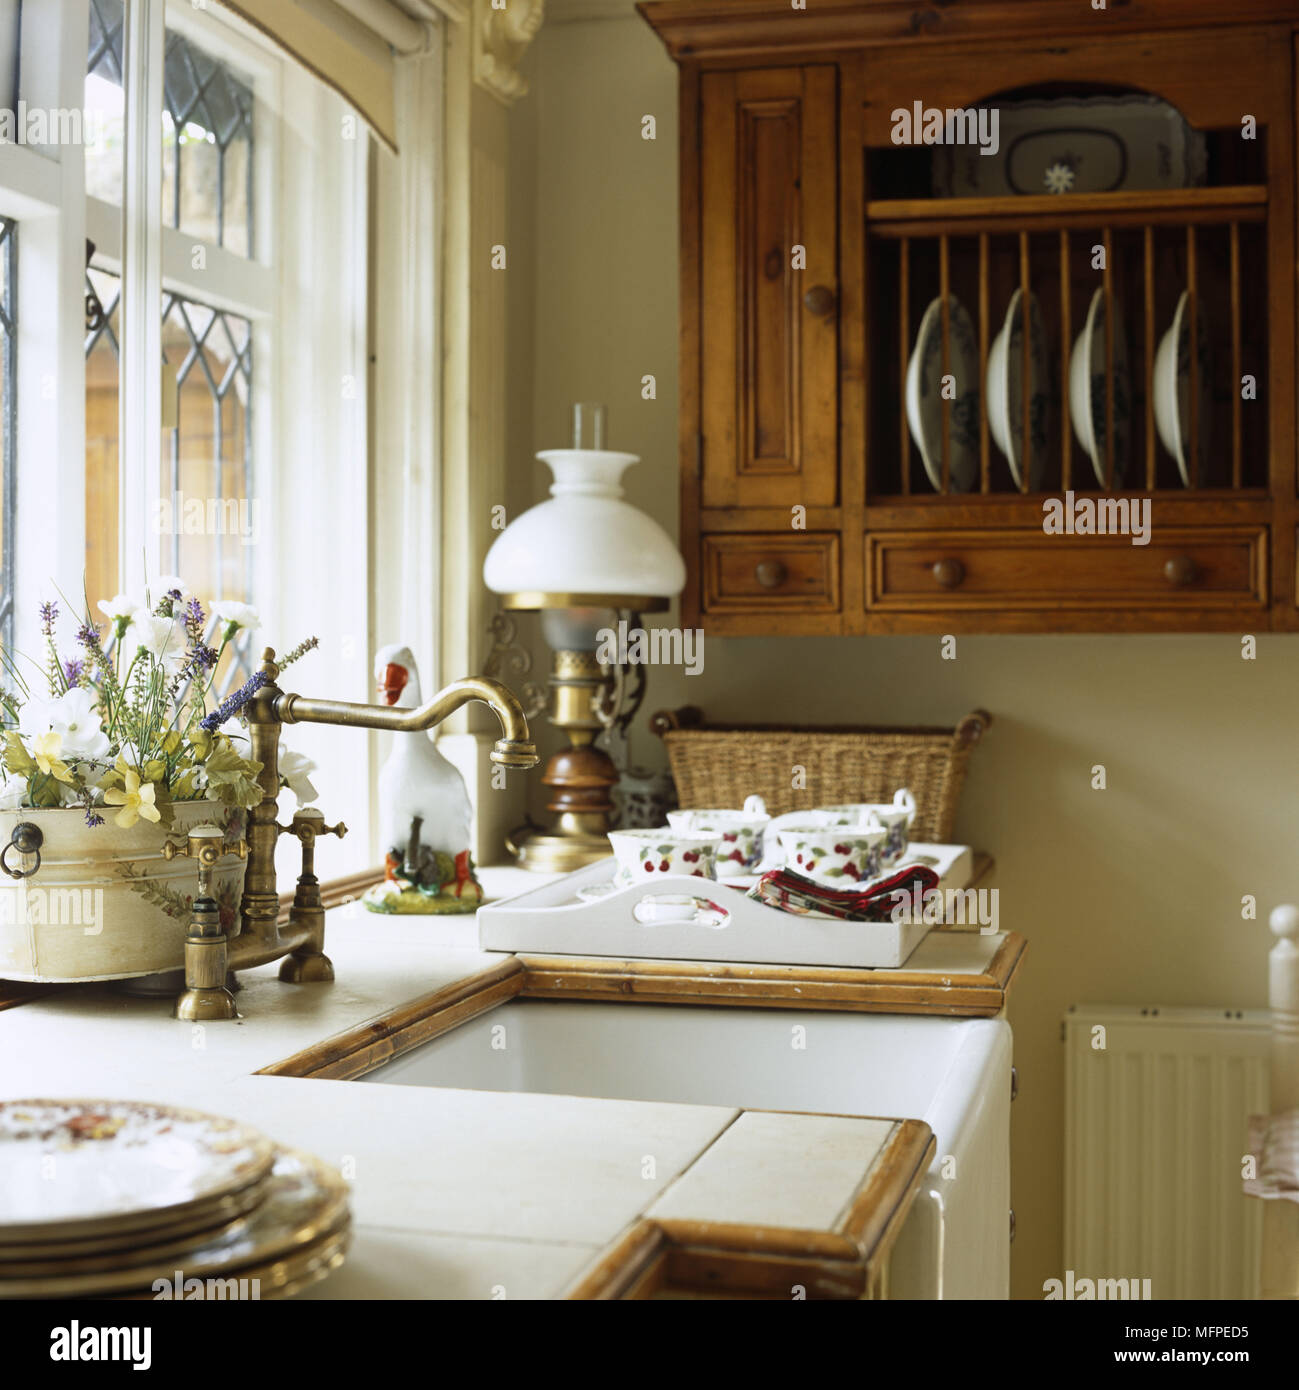 Detail of a traditional Victorian style kitchen sink with a large ...